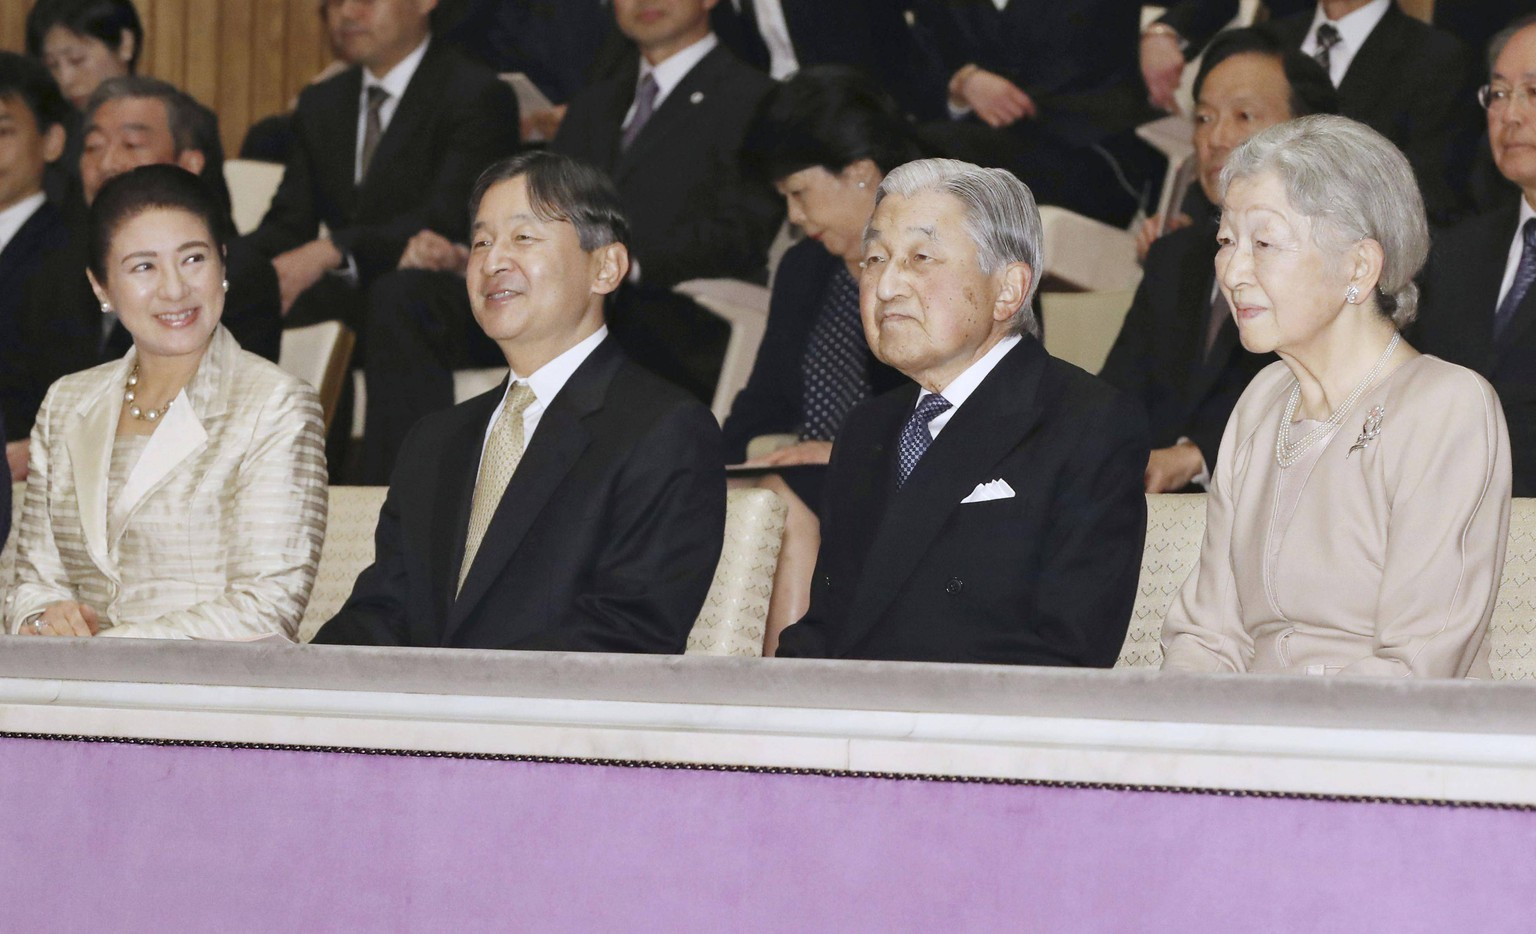 Japanese emperor at concert Japanese Emperor Akihito (2nd from R), Empress Michiko (R), Crown Prince Naruhito (2nd from L) and Crown Princess Masako attend a concert being held at the Imperial Palace in Tokyo on April 2, 2019, to celebrate the 60th anniversary of the imperial couple s marriage and the 30th anniversary of the emperor s enthronement. PUBLICATIONxINxGERxSUIxAUTxHUNxONLY